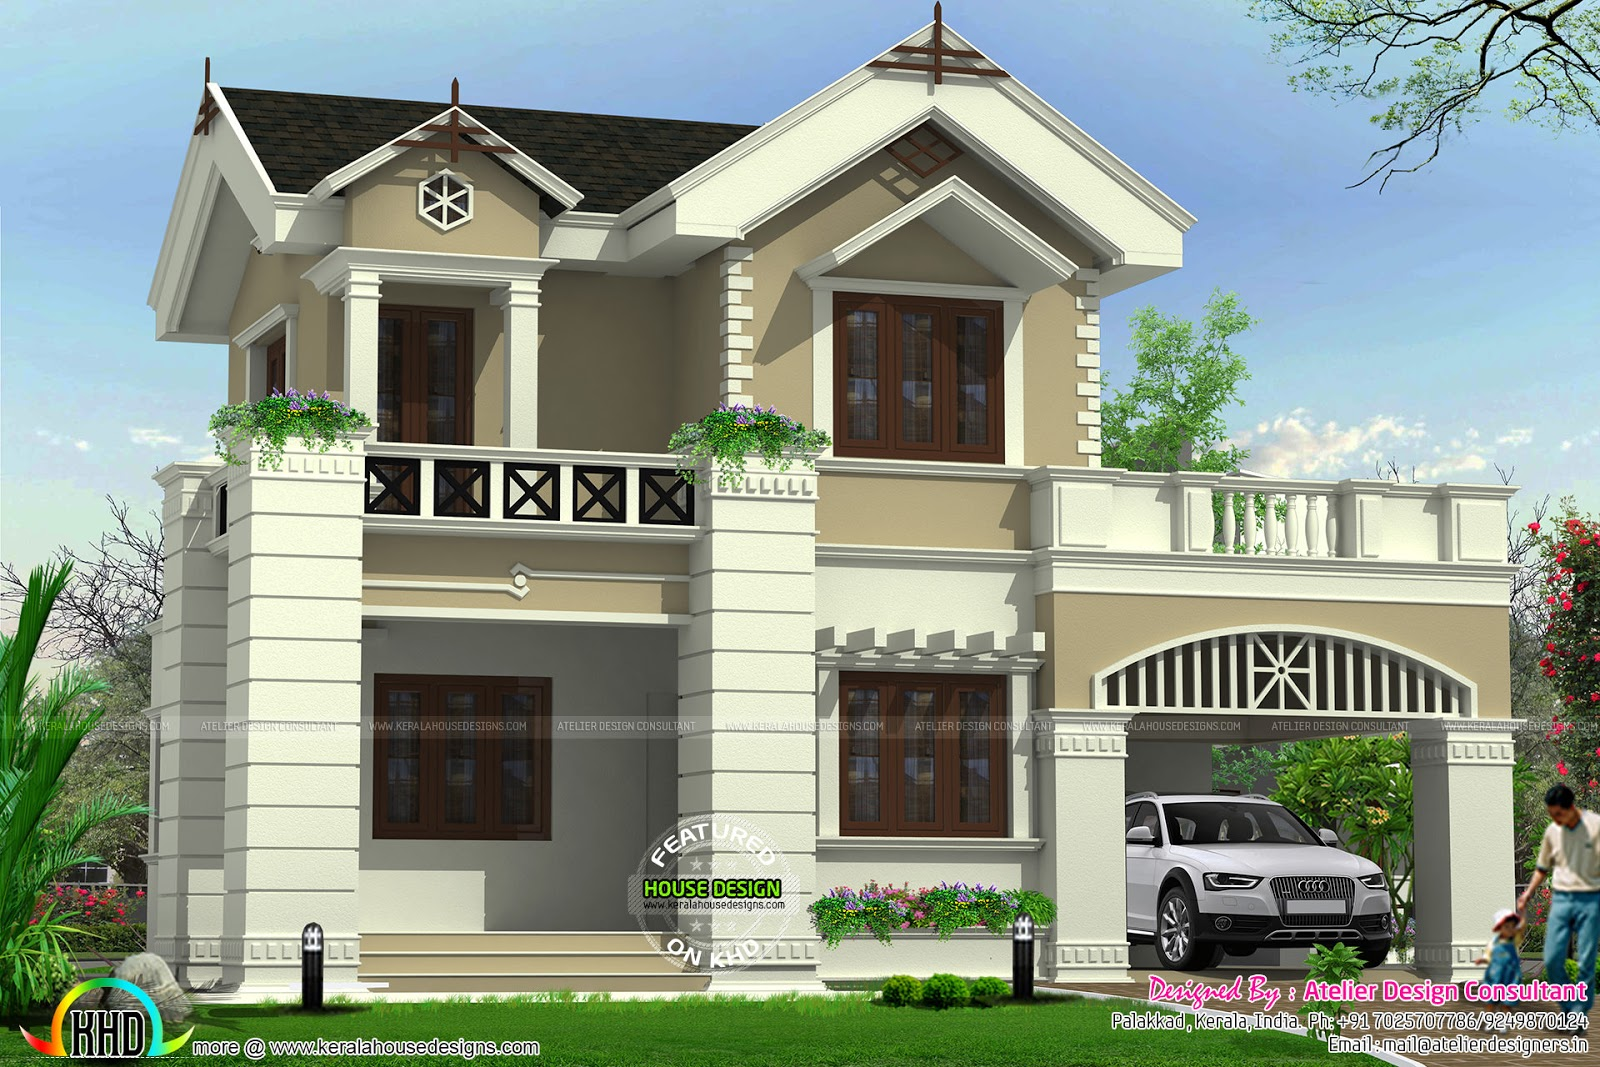 Cute victorian model home kerala home design and floor plans Home design collection